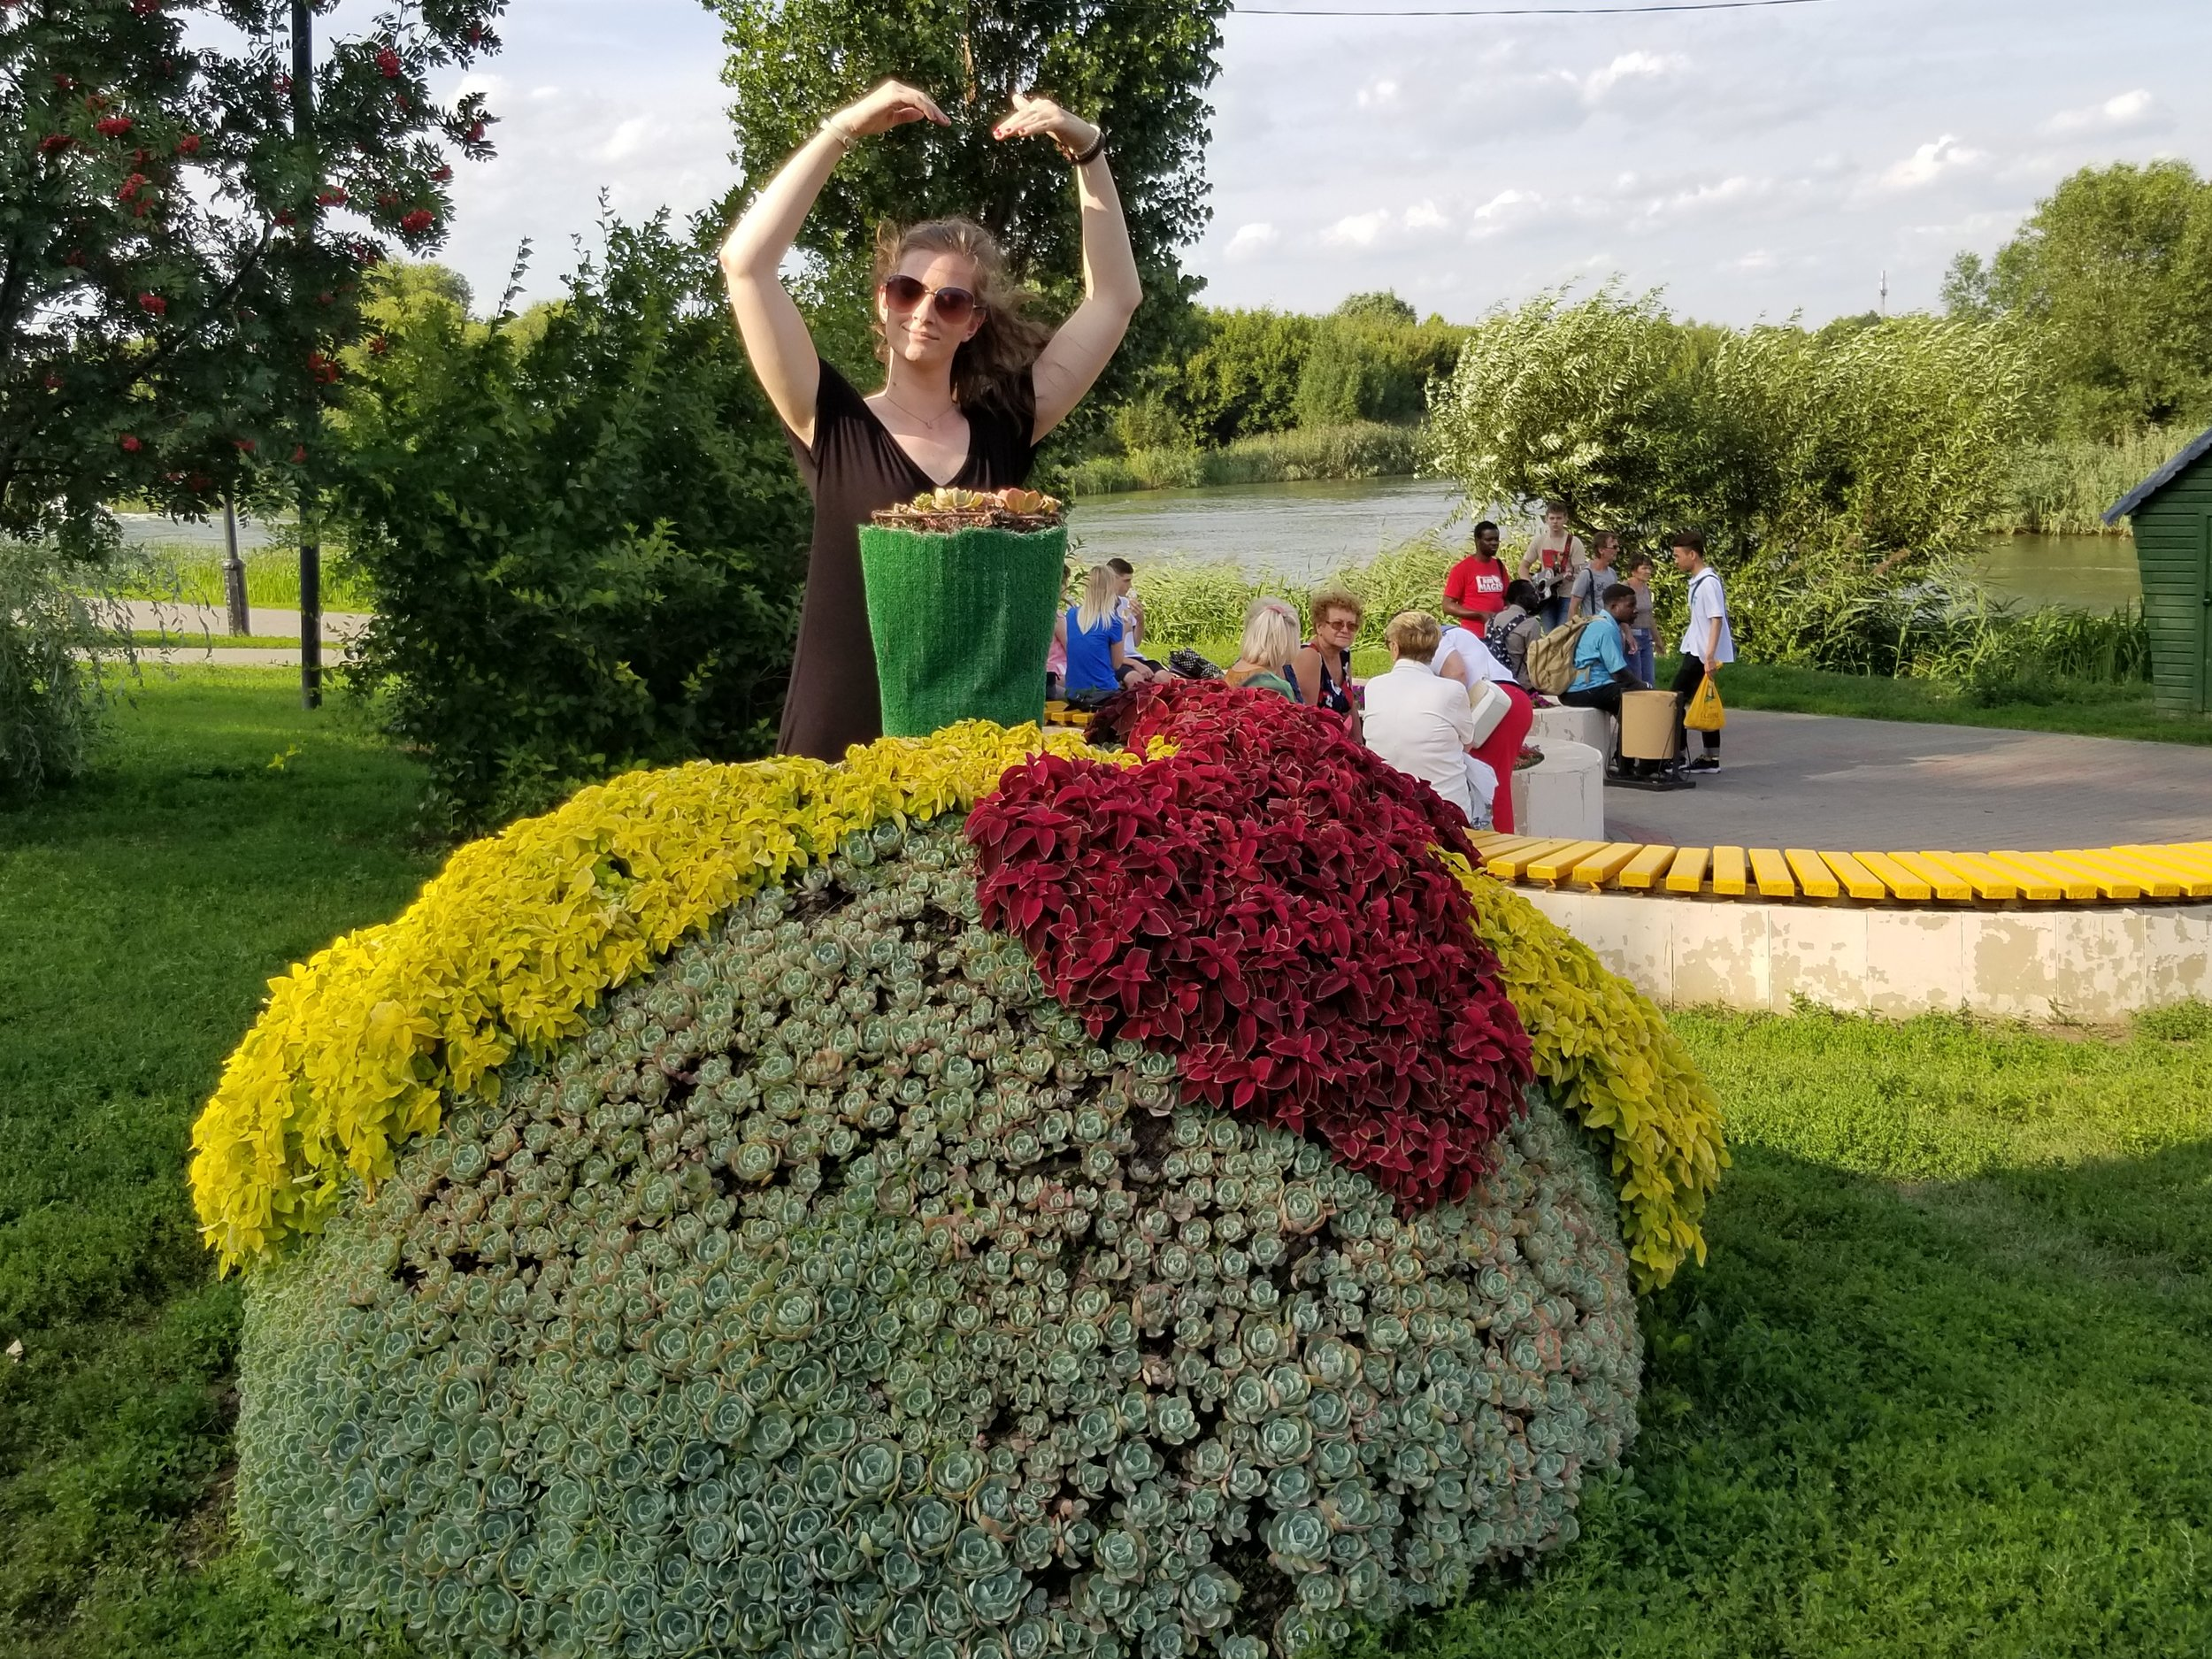 Deborah demonstrating how to pose for the famous flower ball gown by the river in Tambov